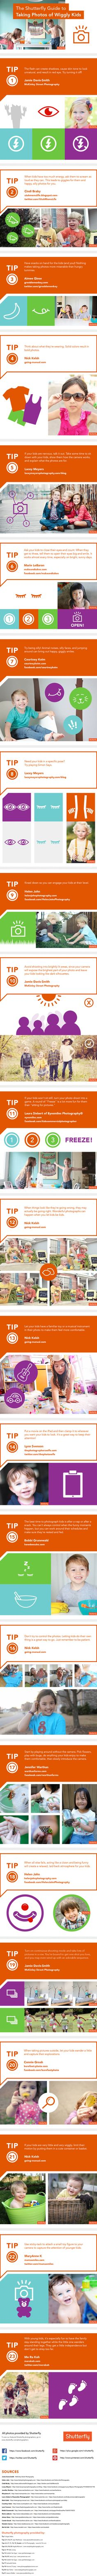 Shutterfly shares 23 kids photography tips that make capturing adorable photos easier and more enjoyable